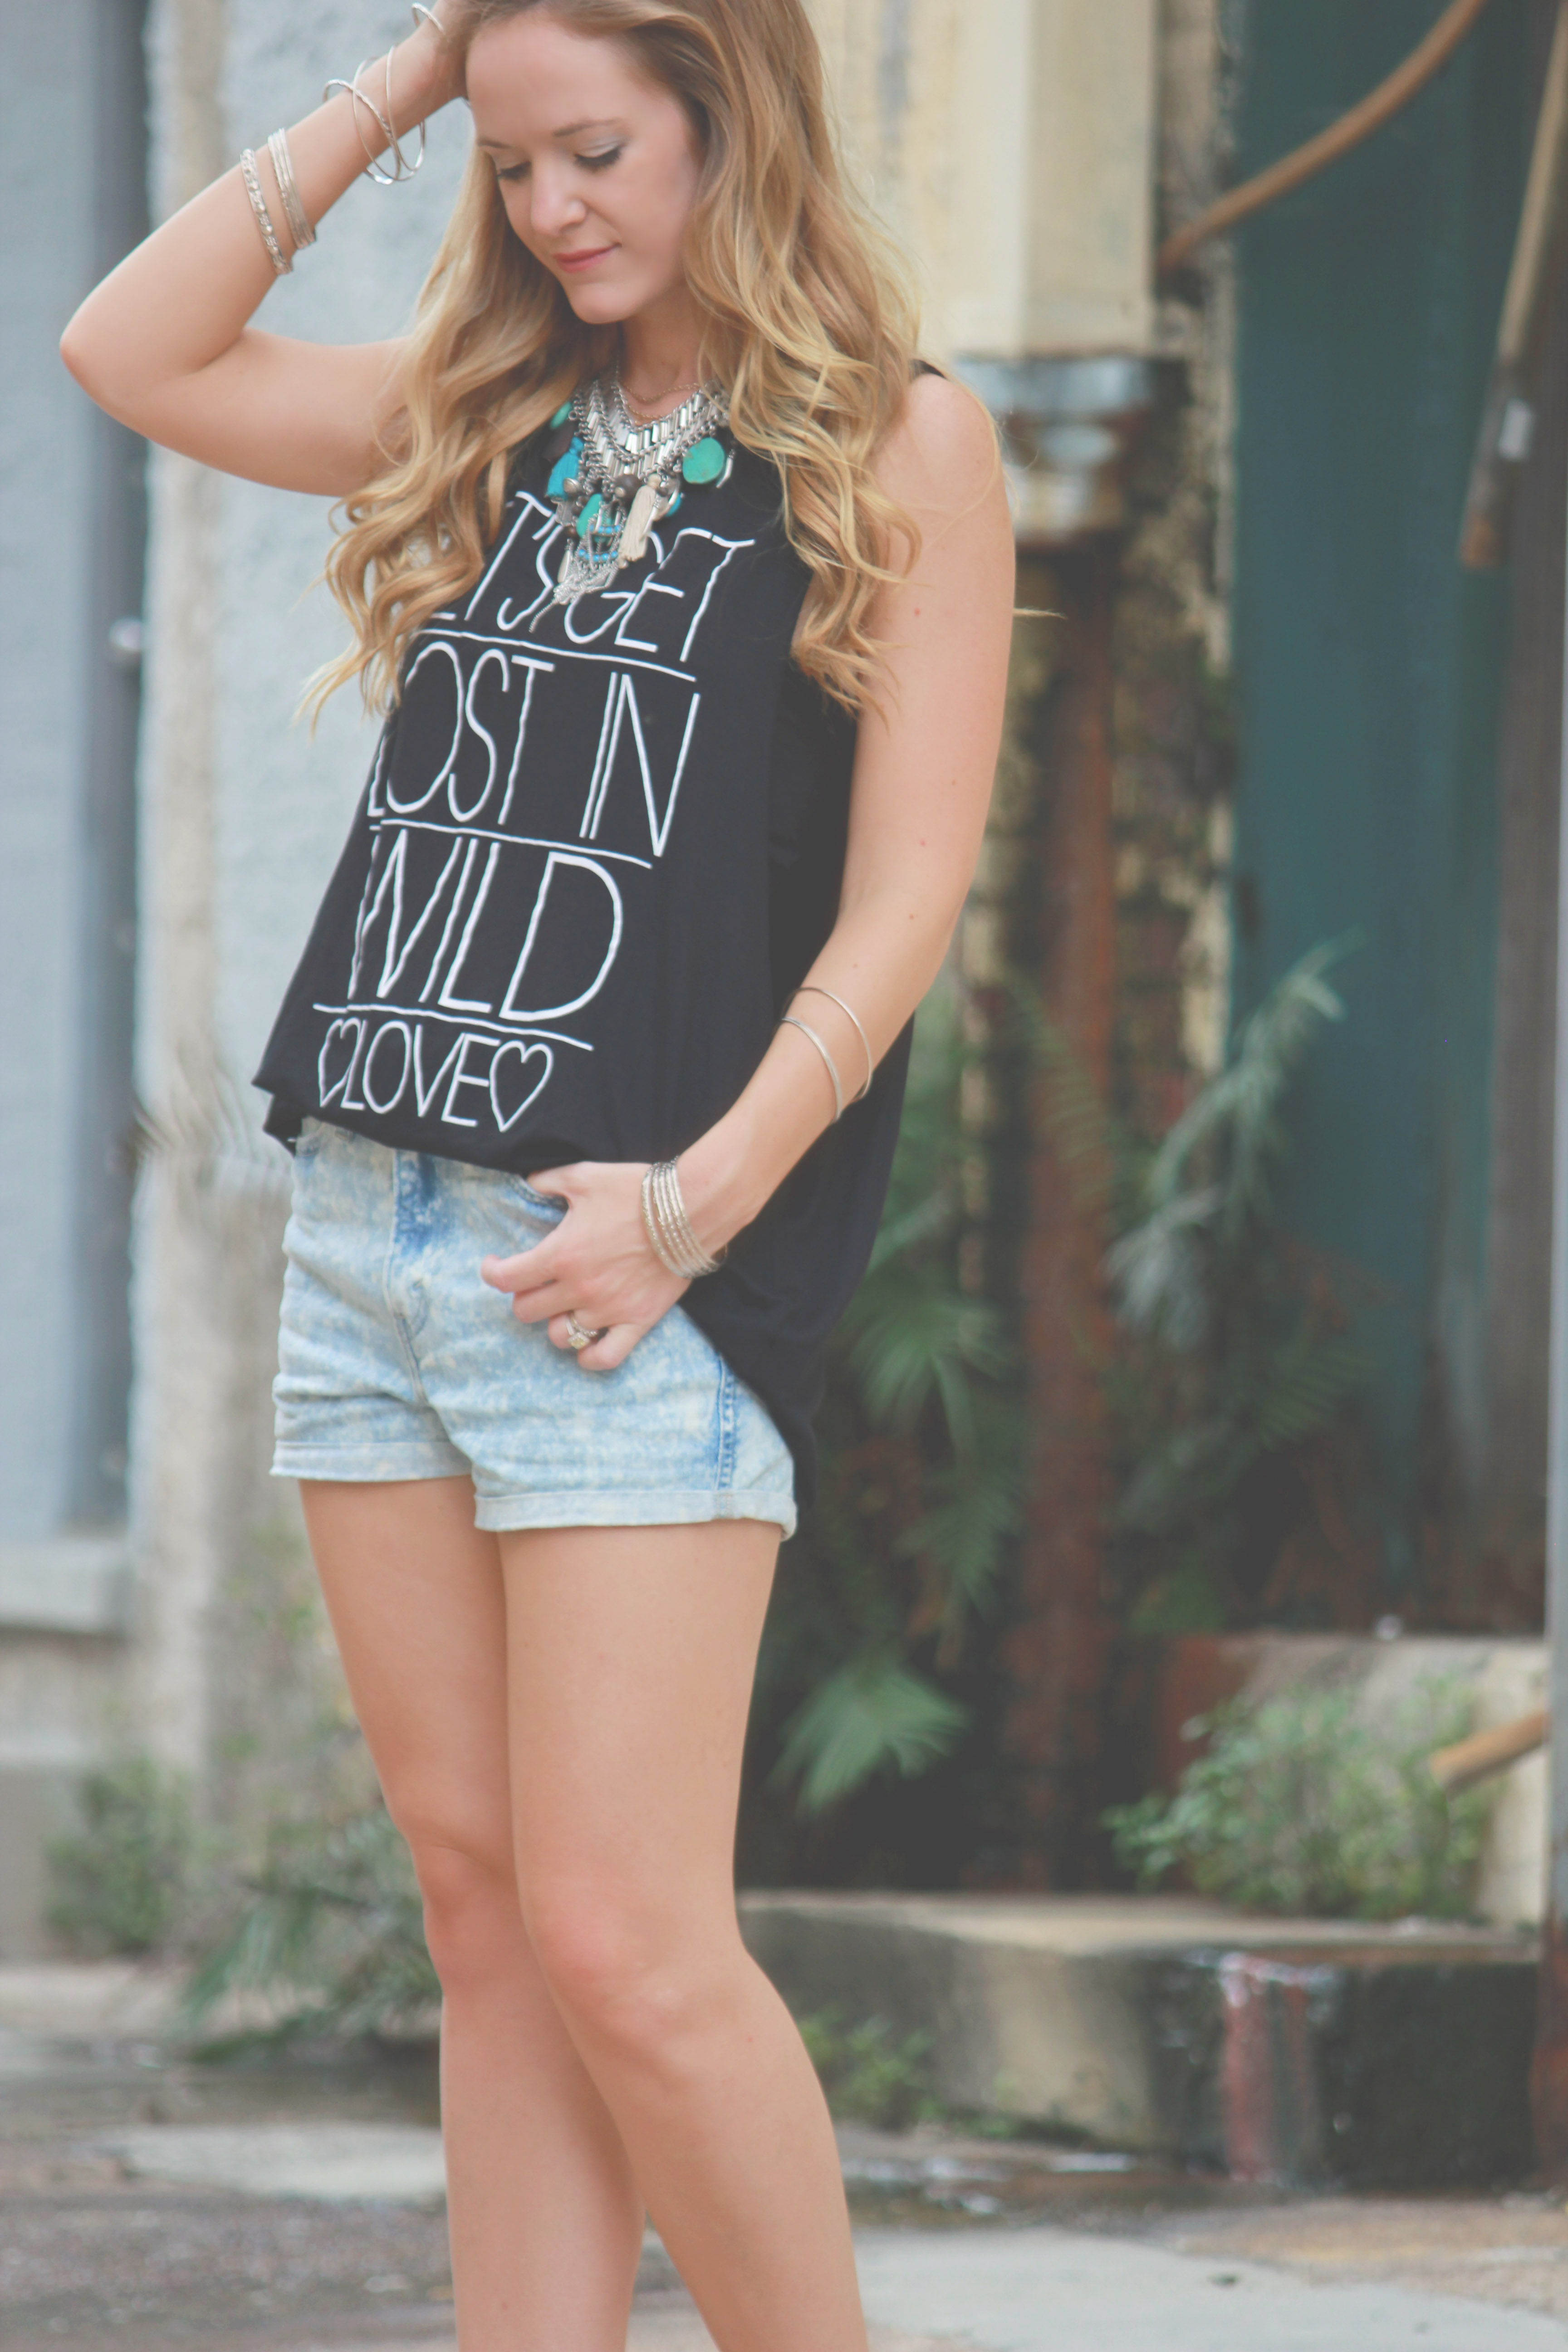 vinnie louise top, tjmaxx shorts, acid wash shorts, express necklace, boho outfit, edgy outfit, summer outfit